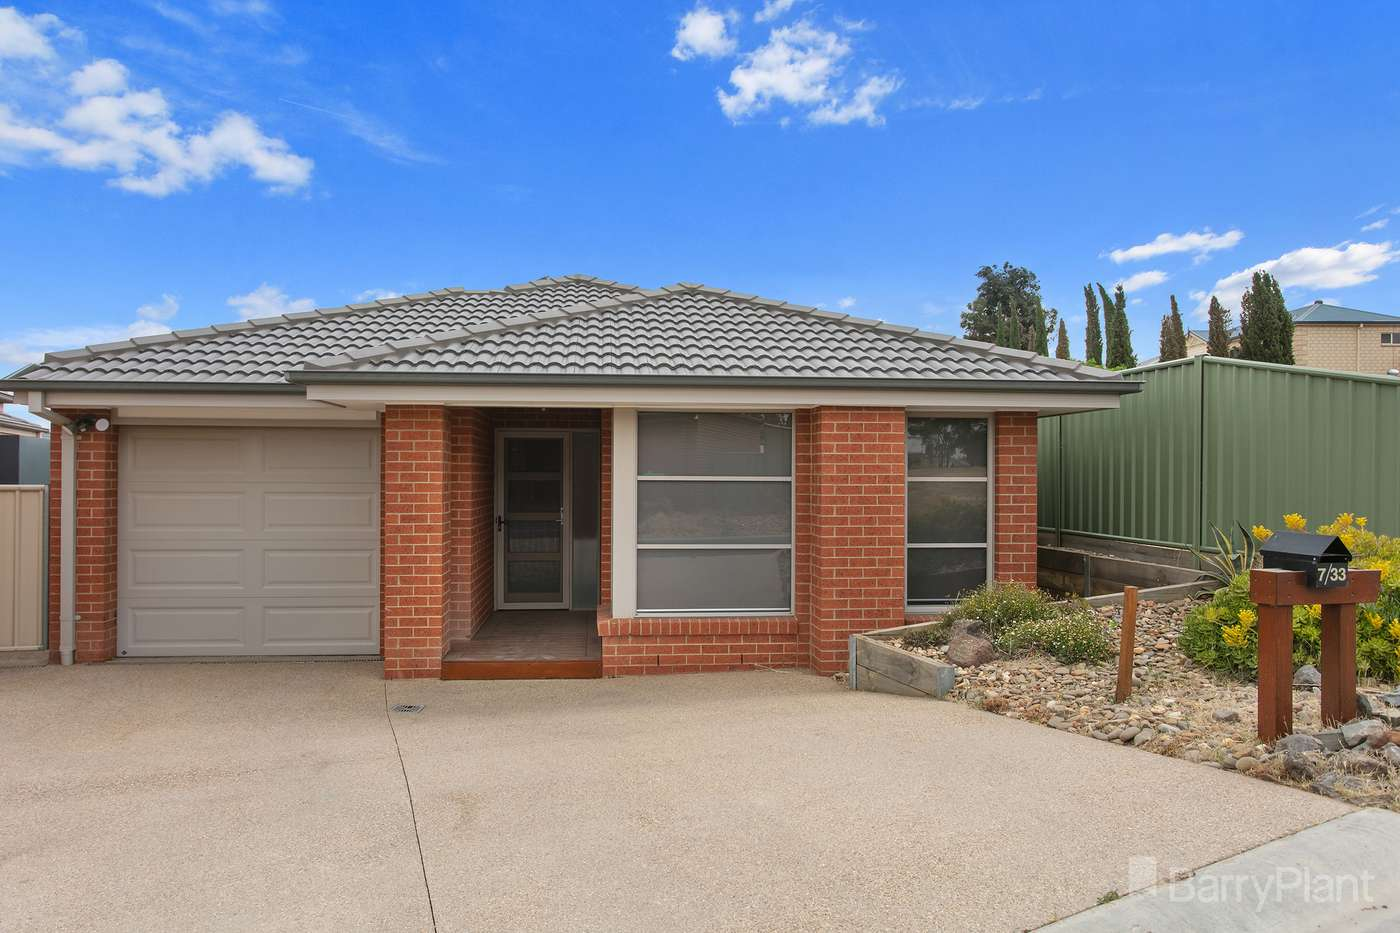 Main view of Homely house listing, 7/33 Strickland Road, East Bendigo, VIC 3550